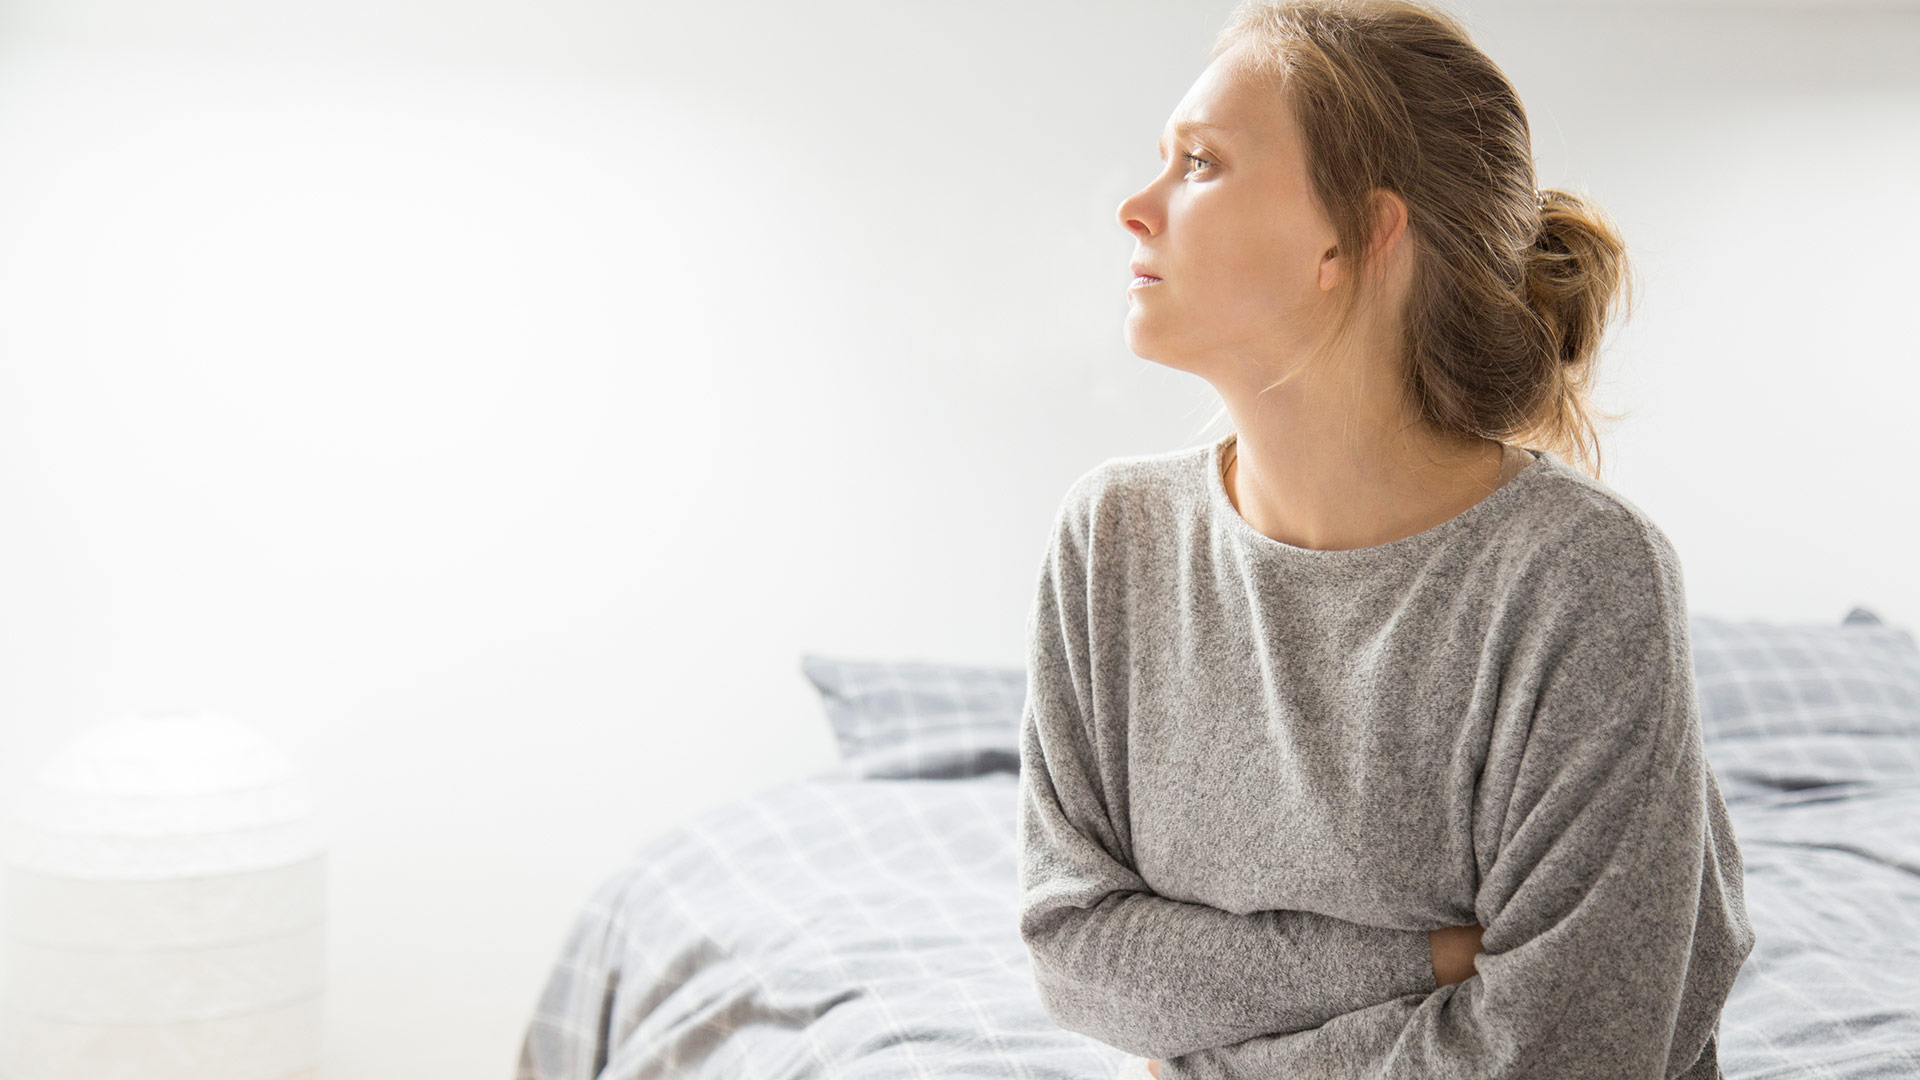 Historically, women's periods have been considered taboo. But why? Most girls get one and not talking about periods can result is missing important clues to your overall health.